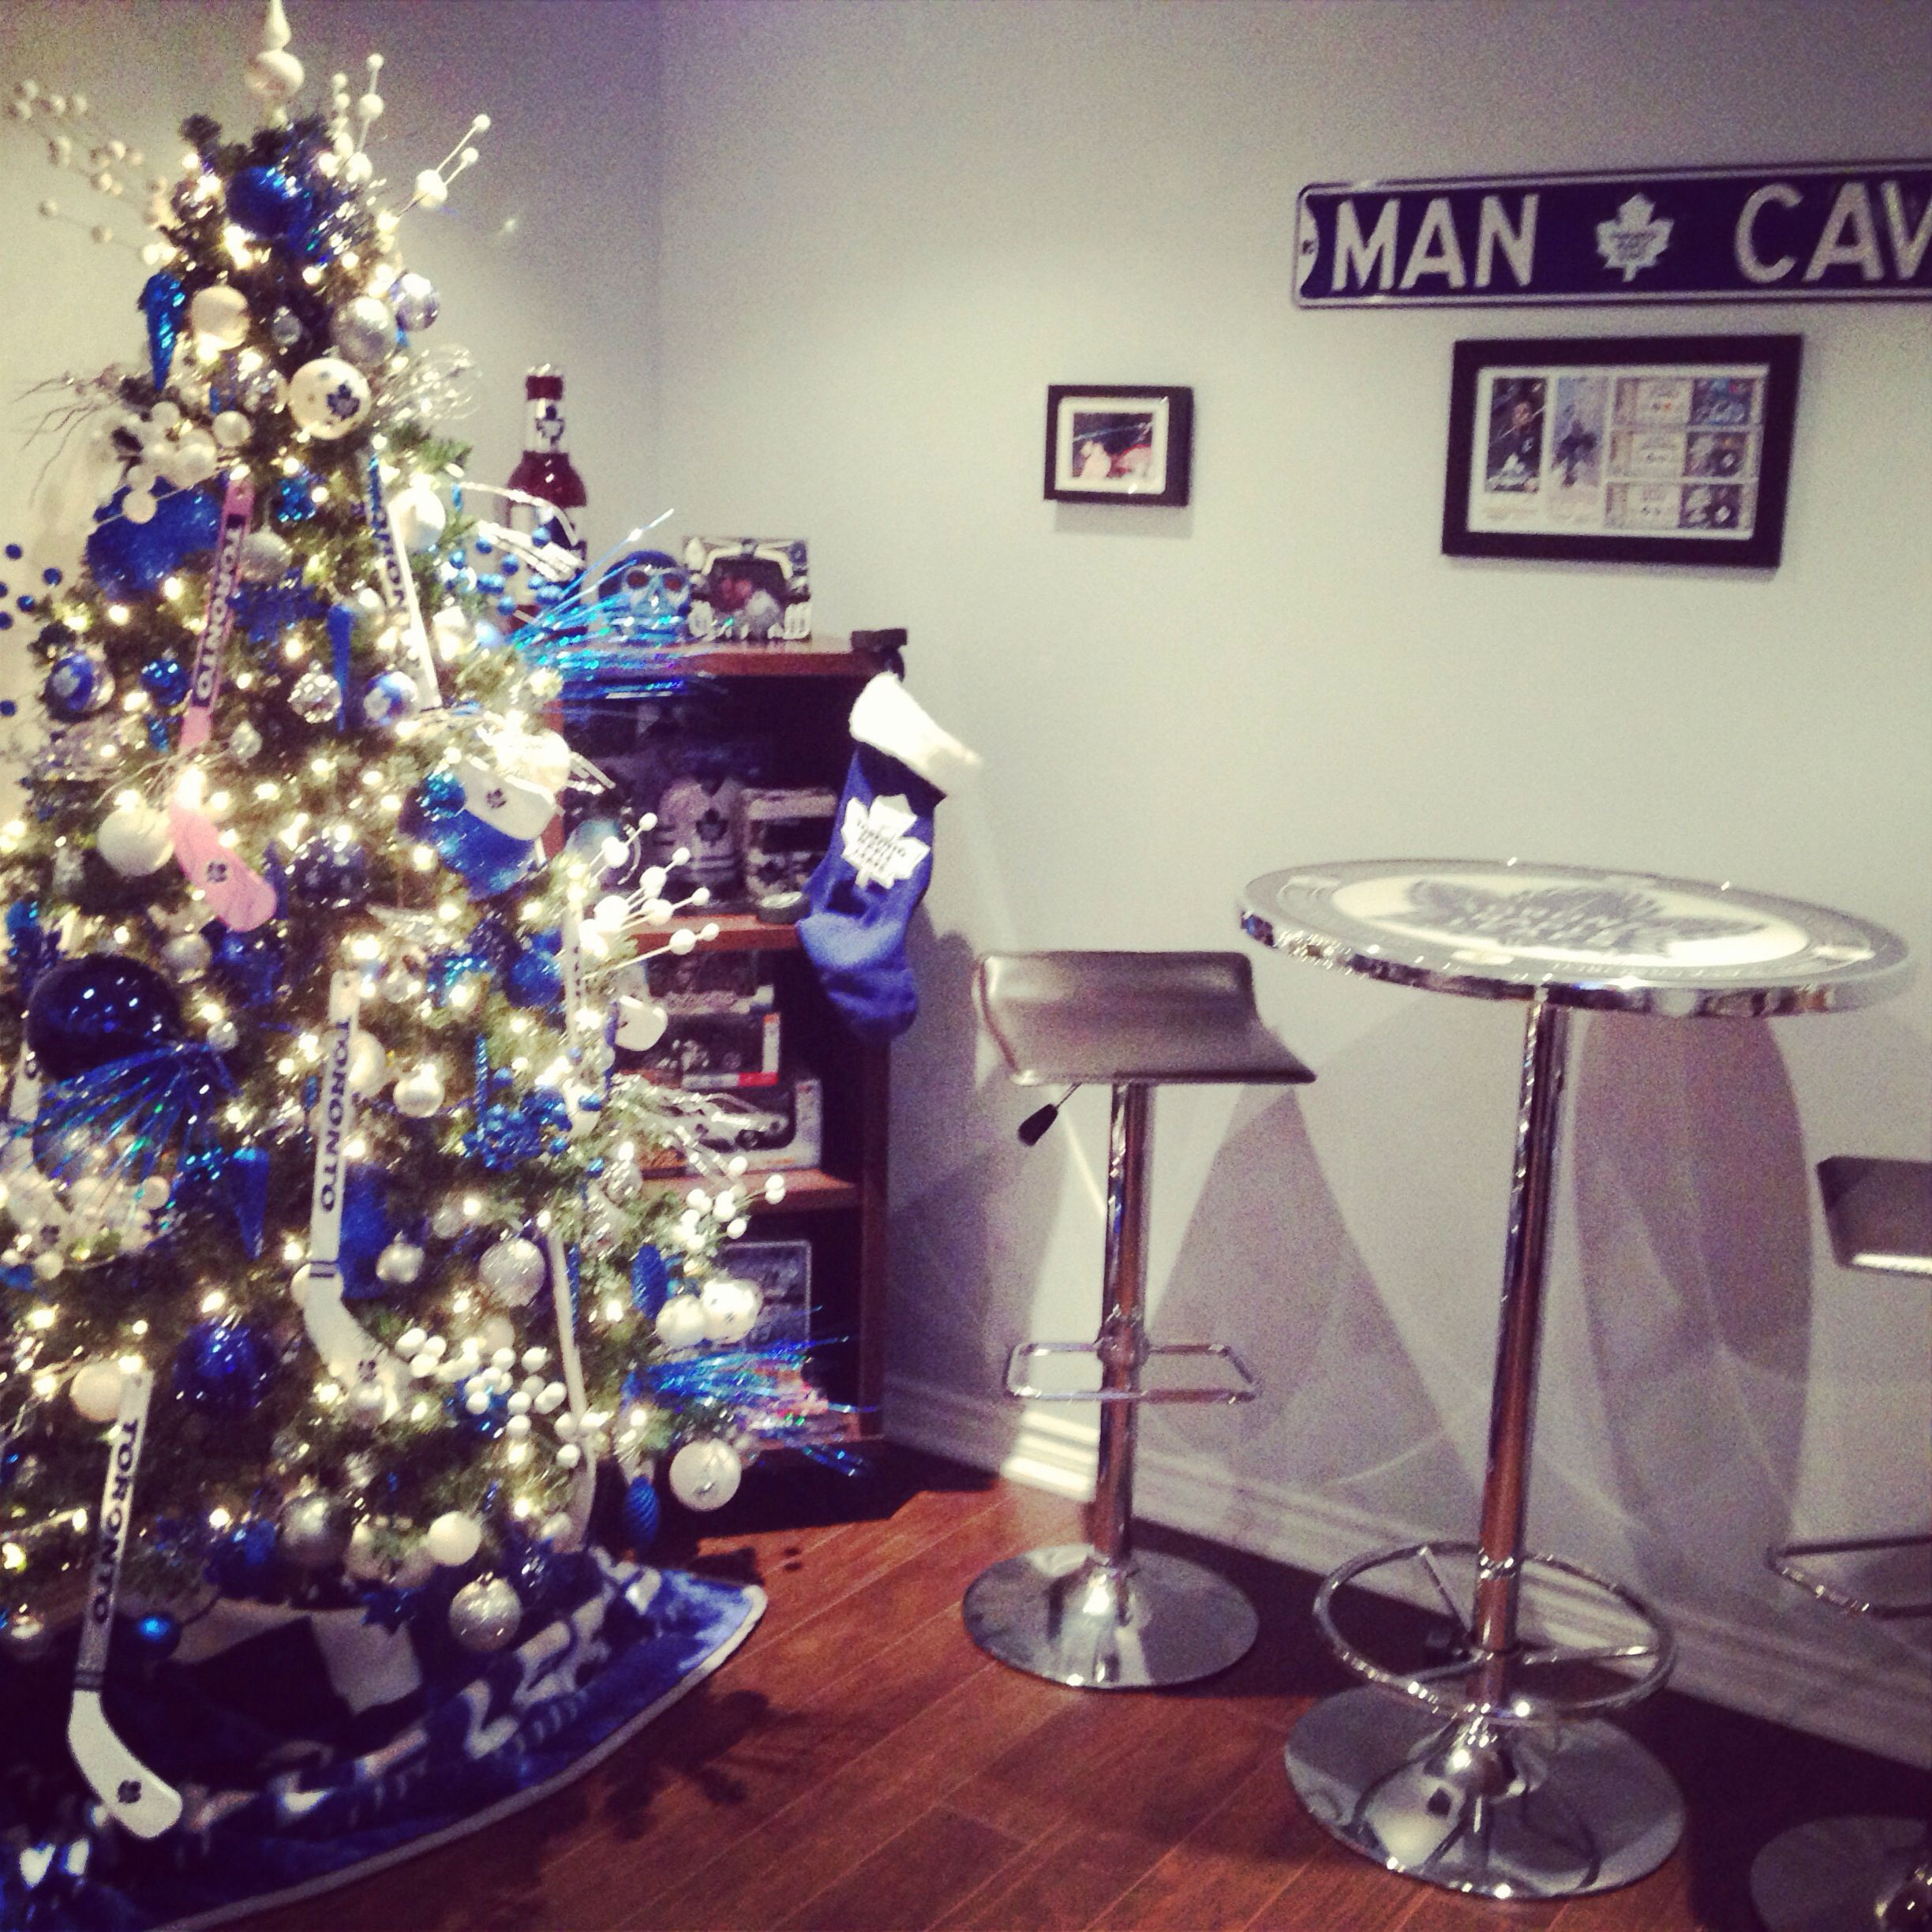 Christmas Trees Toronto: Toronto Maples Leafs Tree 'Kyle's Man Cave'